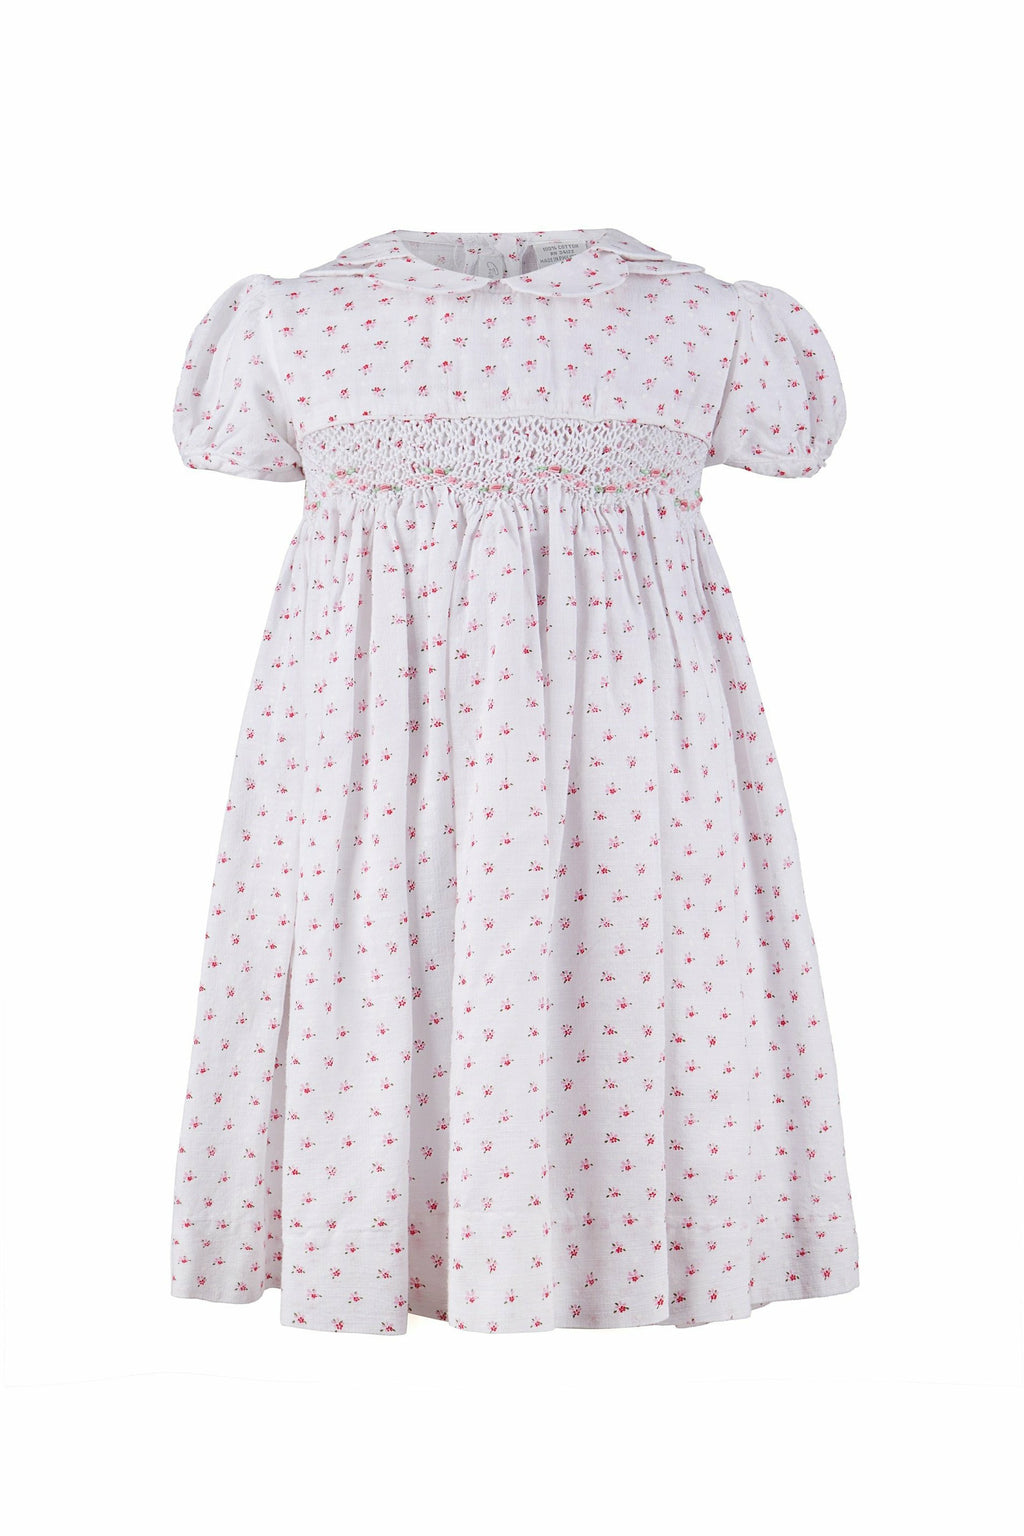 Yoke Dress Hand Smocked Floral White